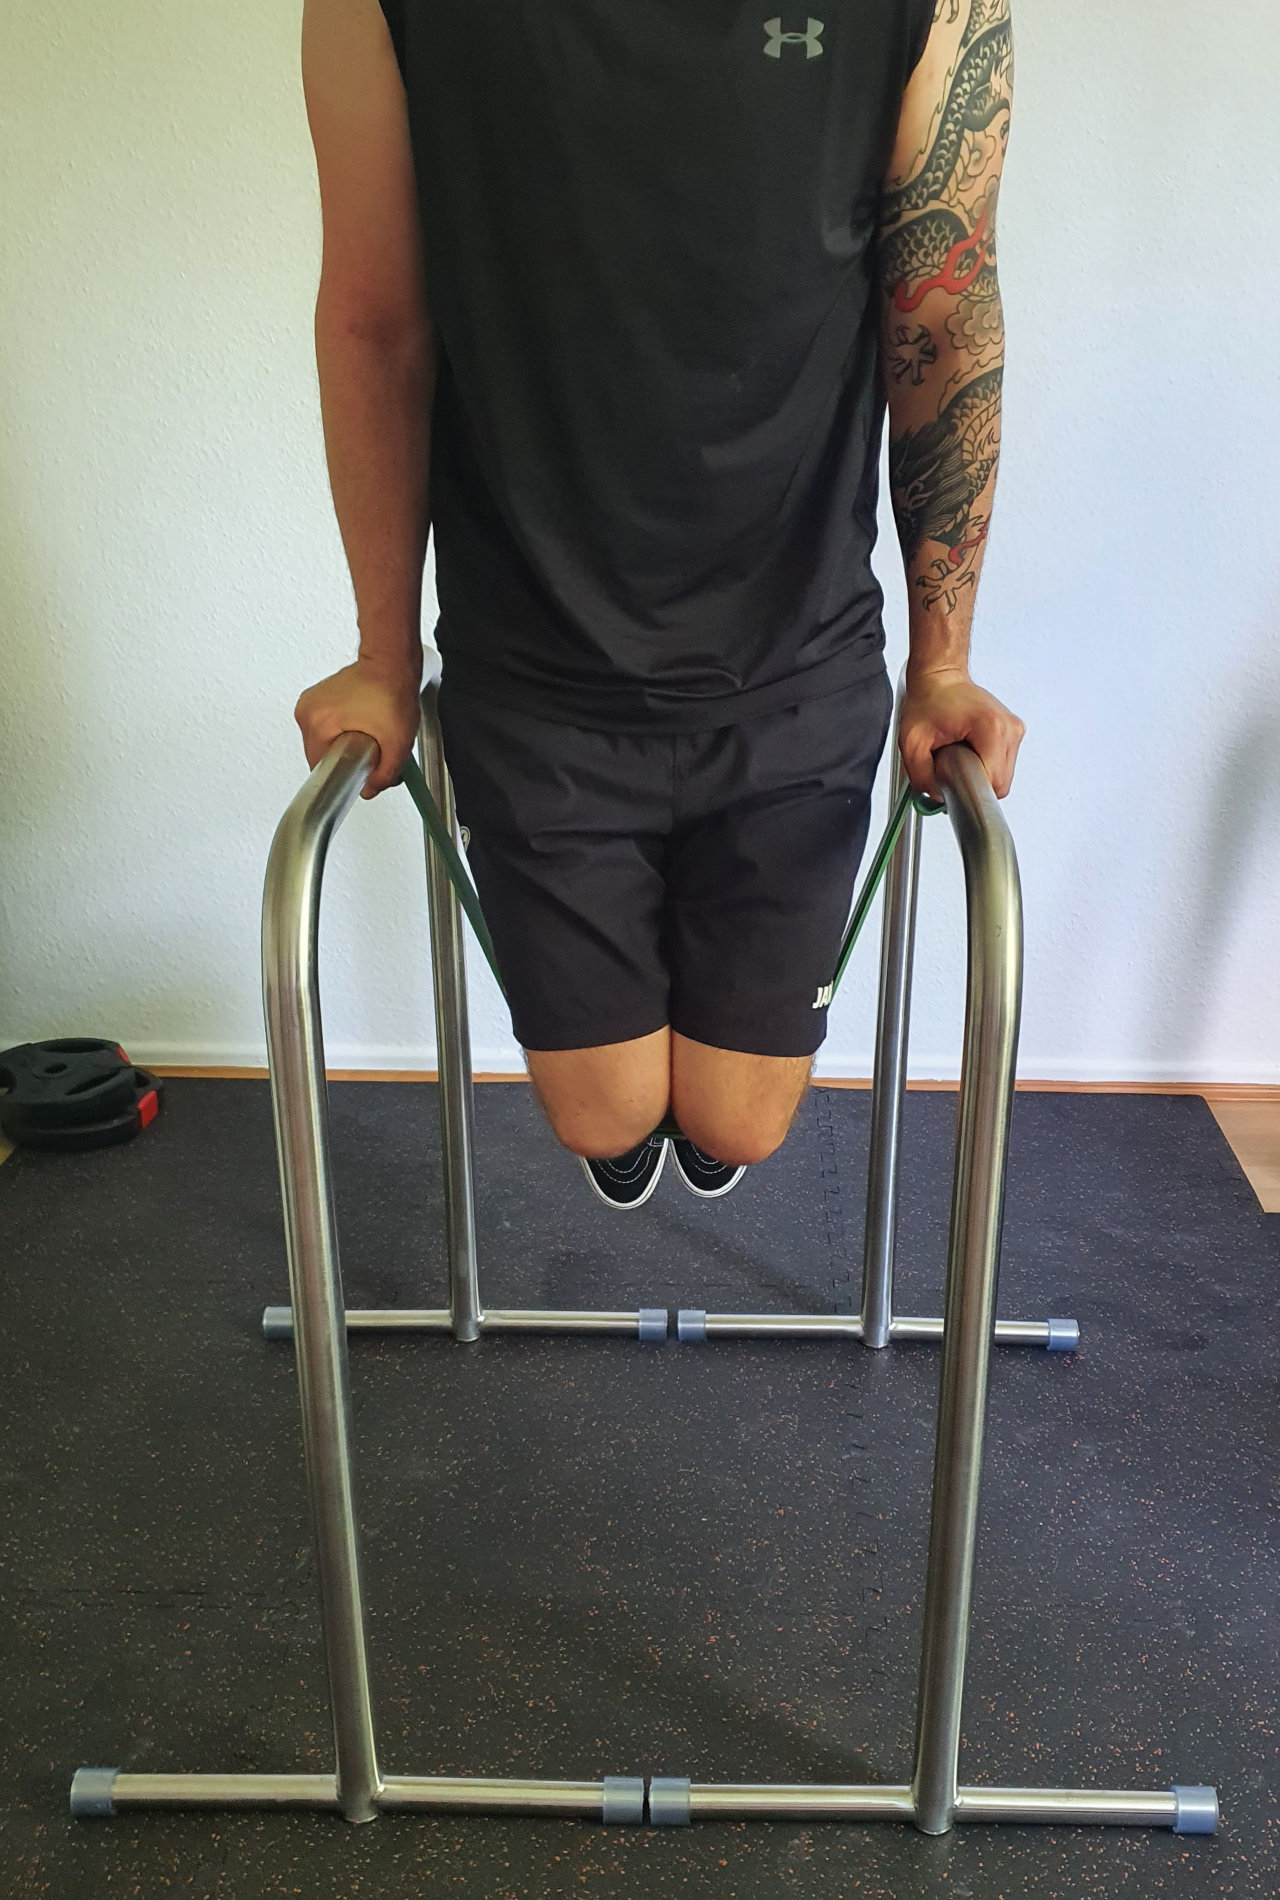 assisted_parallel_bar_dips